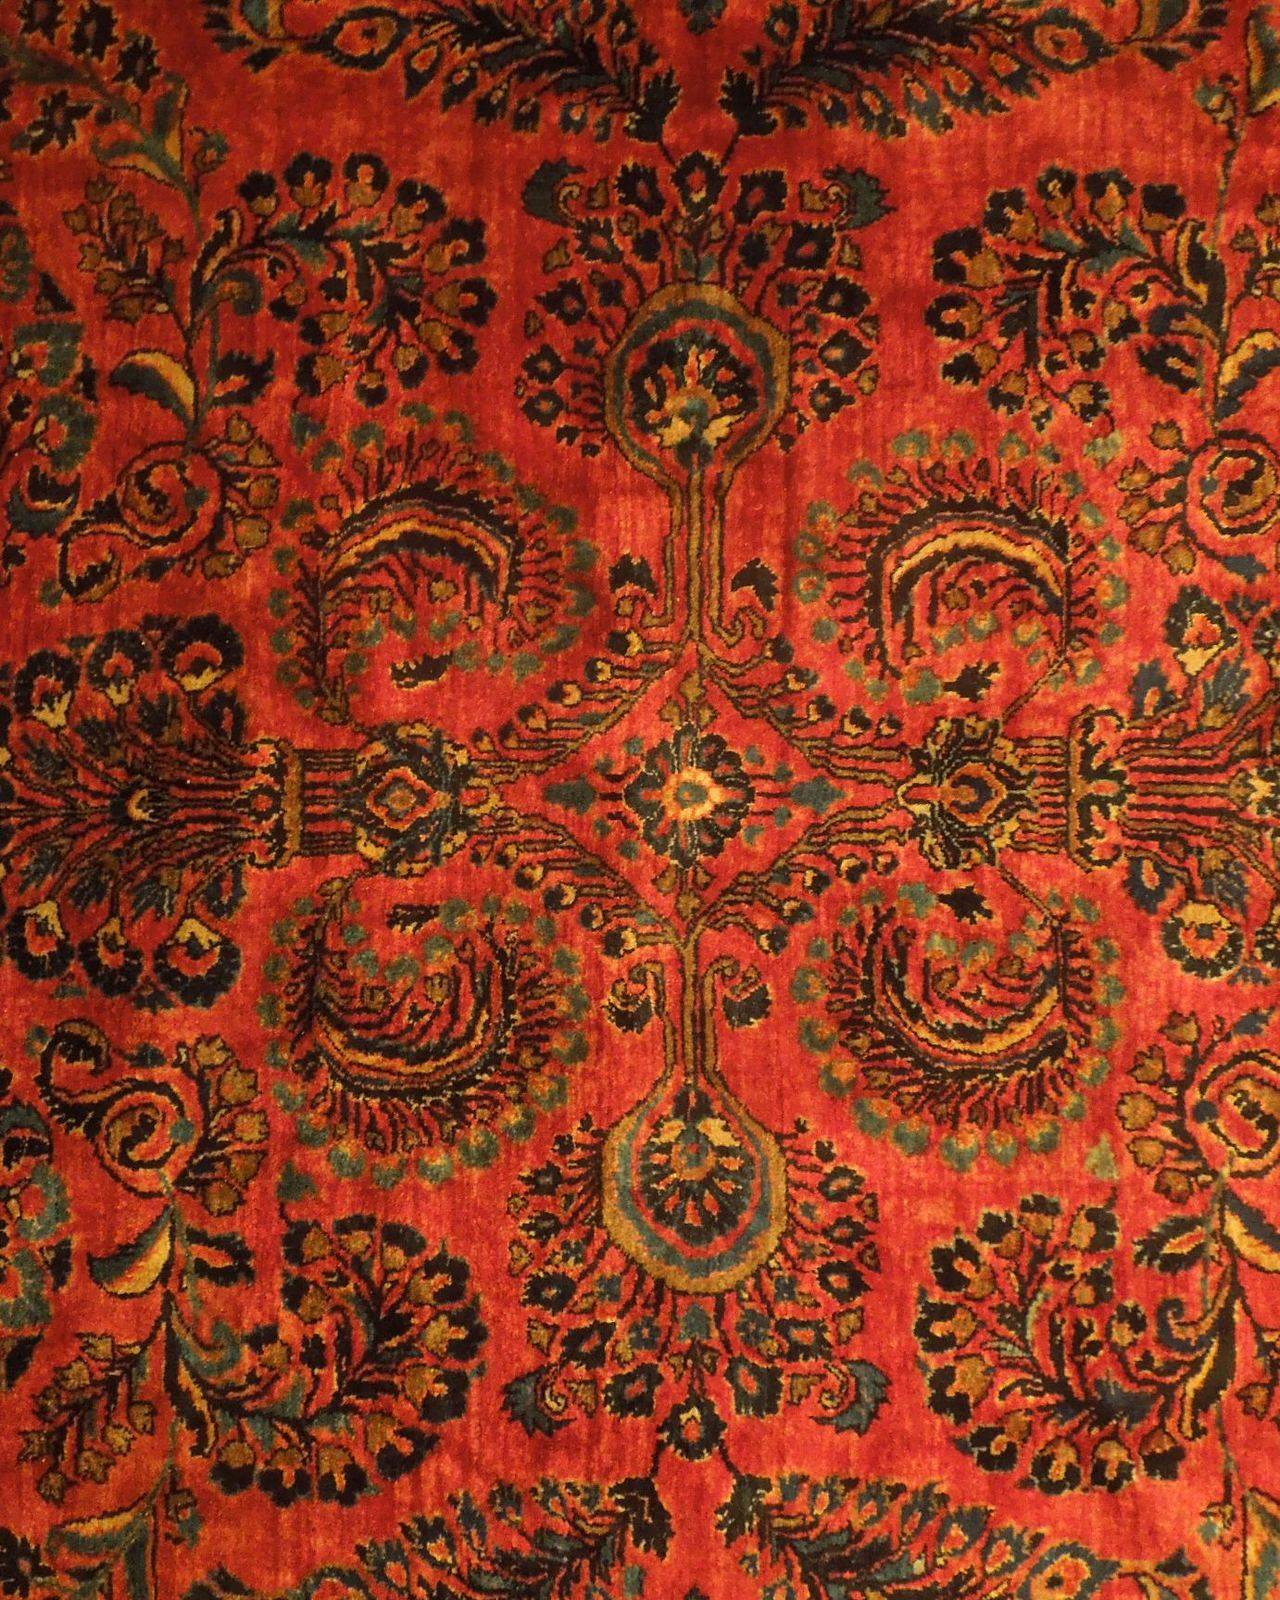 Red Sarouk Persian Wool Handmade Rug 11' x 18' Vivid Red Detailed Original Rug image 10